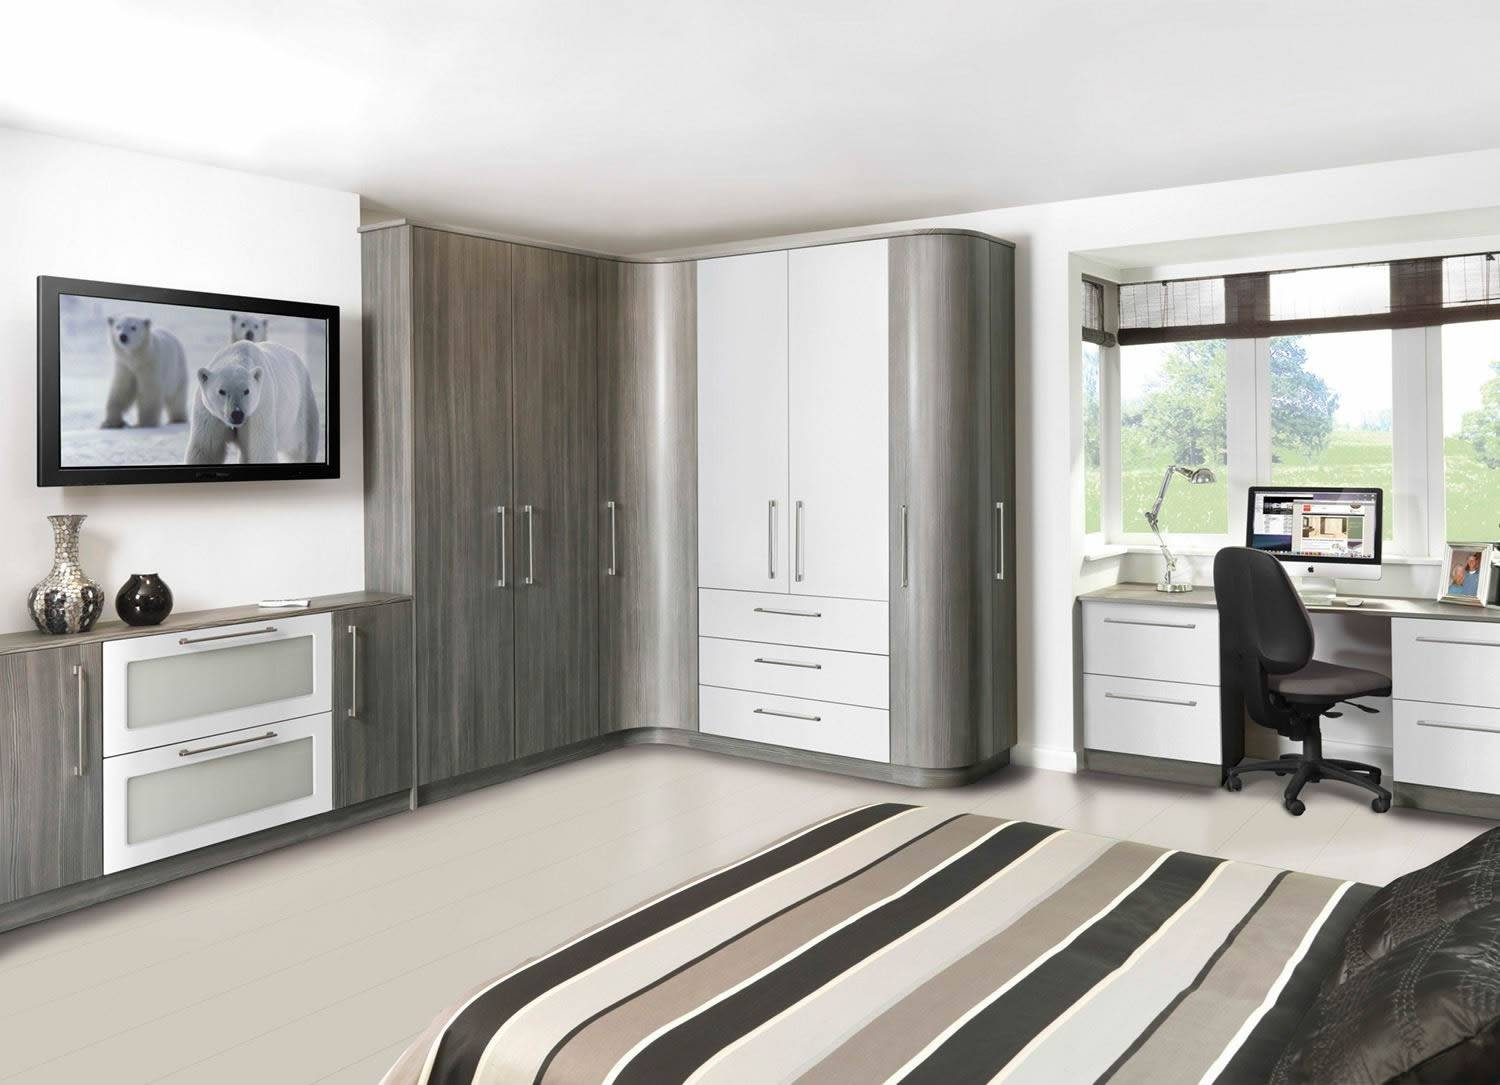 Fitted Wardrobes For Your Bedroom Telford Shropshire - pertaining to Bedroom Wardrobes (Image 12 of 15)